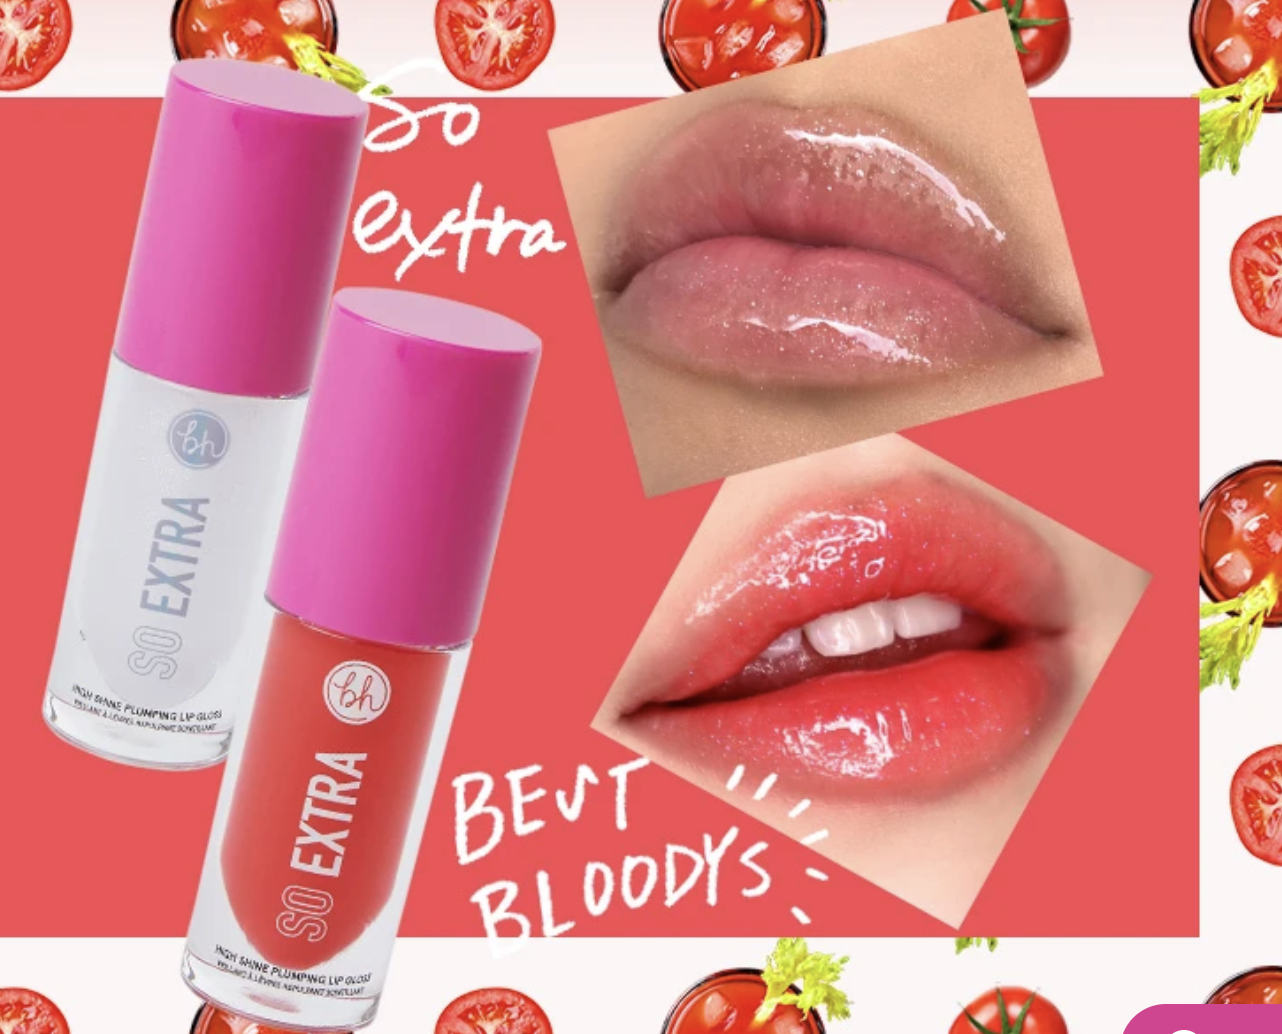 Two bottles of lip gloss, one clear and one an orangey-pink, next two models' lips showing the gloss shine when they're on